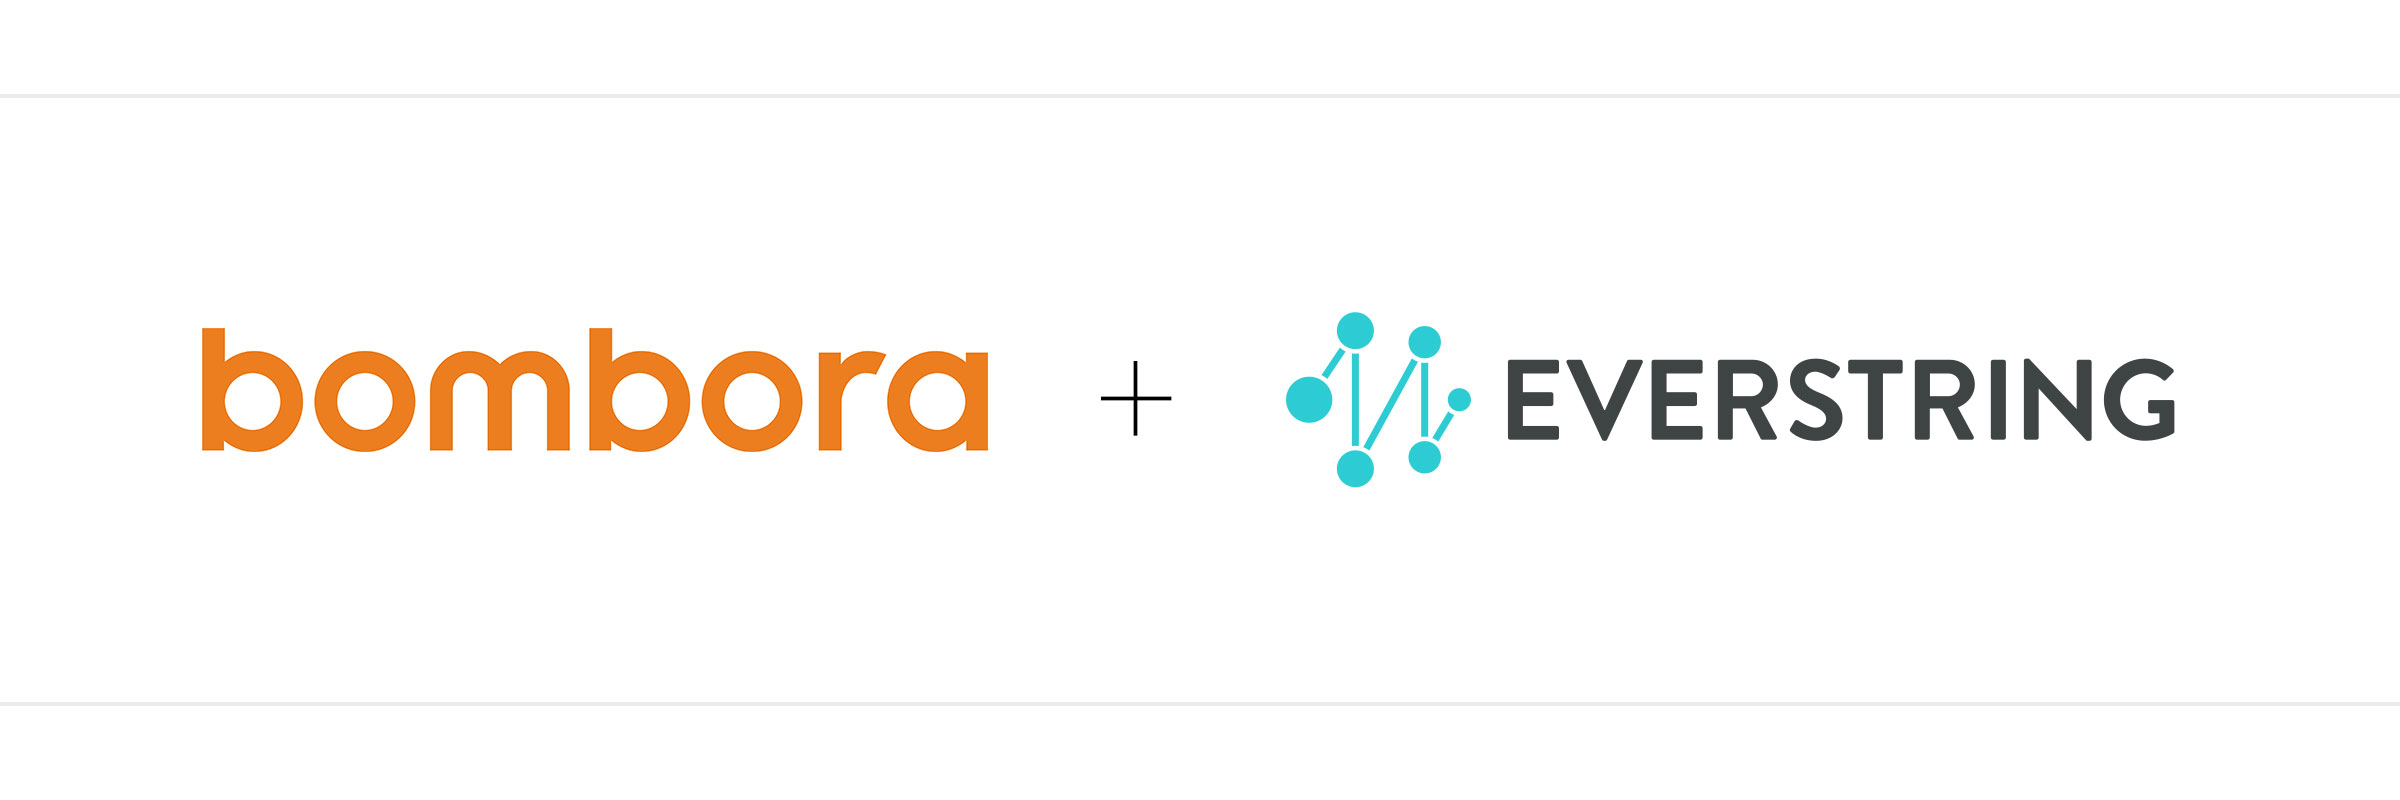 EverString and Bombora combine AI and Intent Data